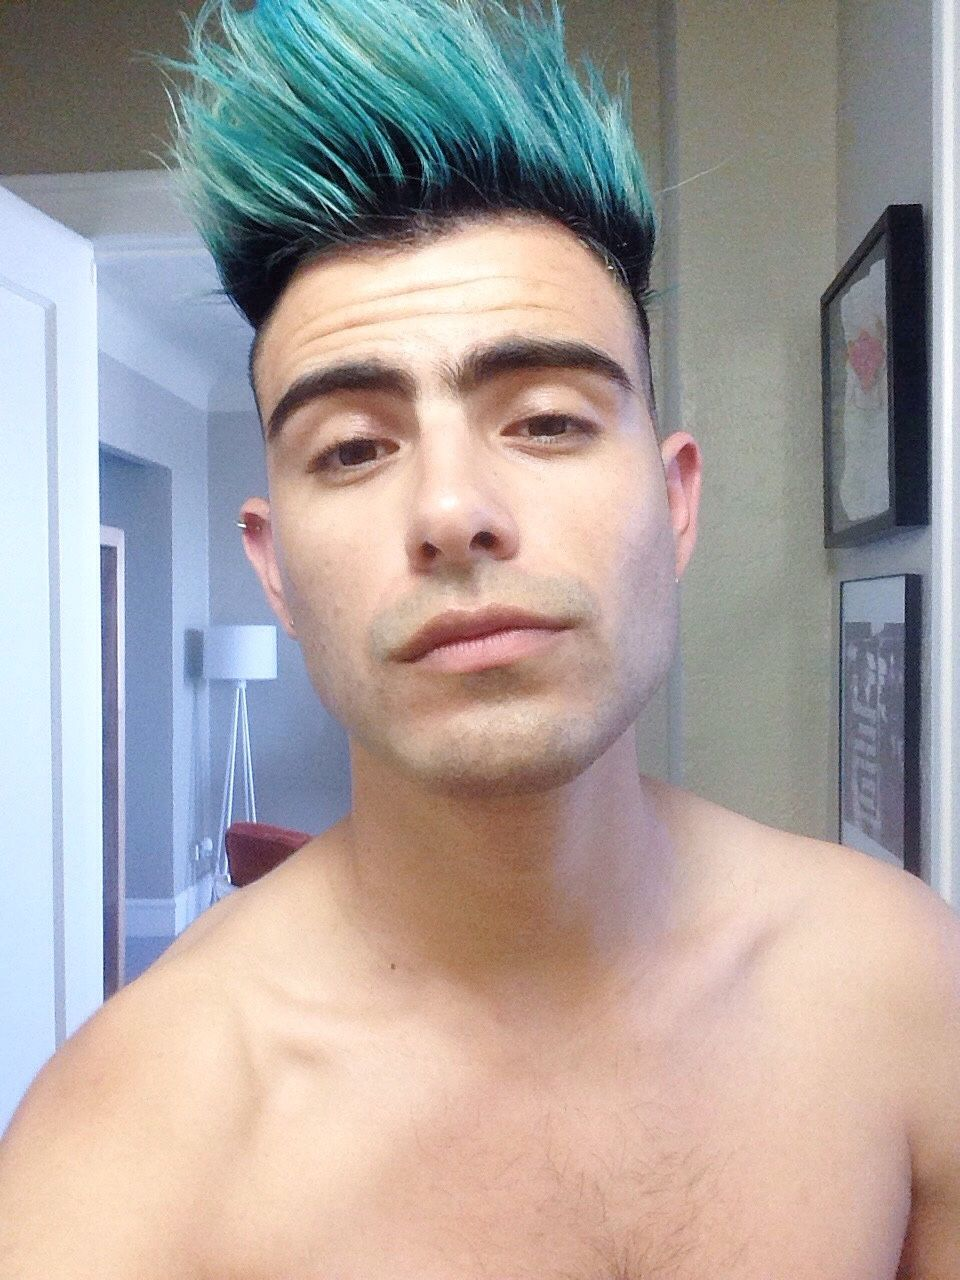 Pin By Adriano Ubence On Love Is In The Hair Dyed Hair Blue Boys Colored Hair Men Hair Color